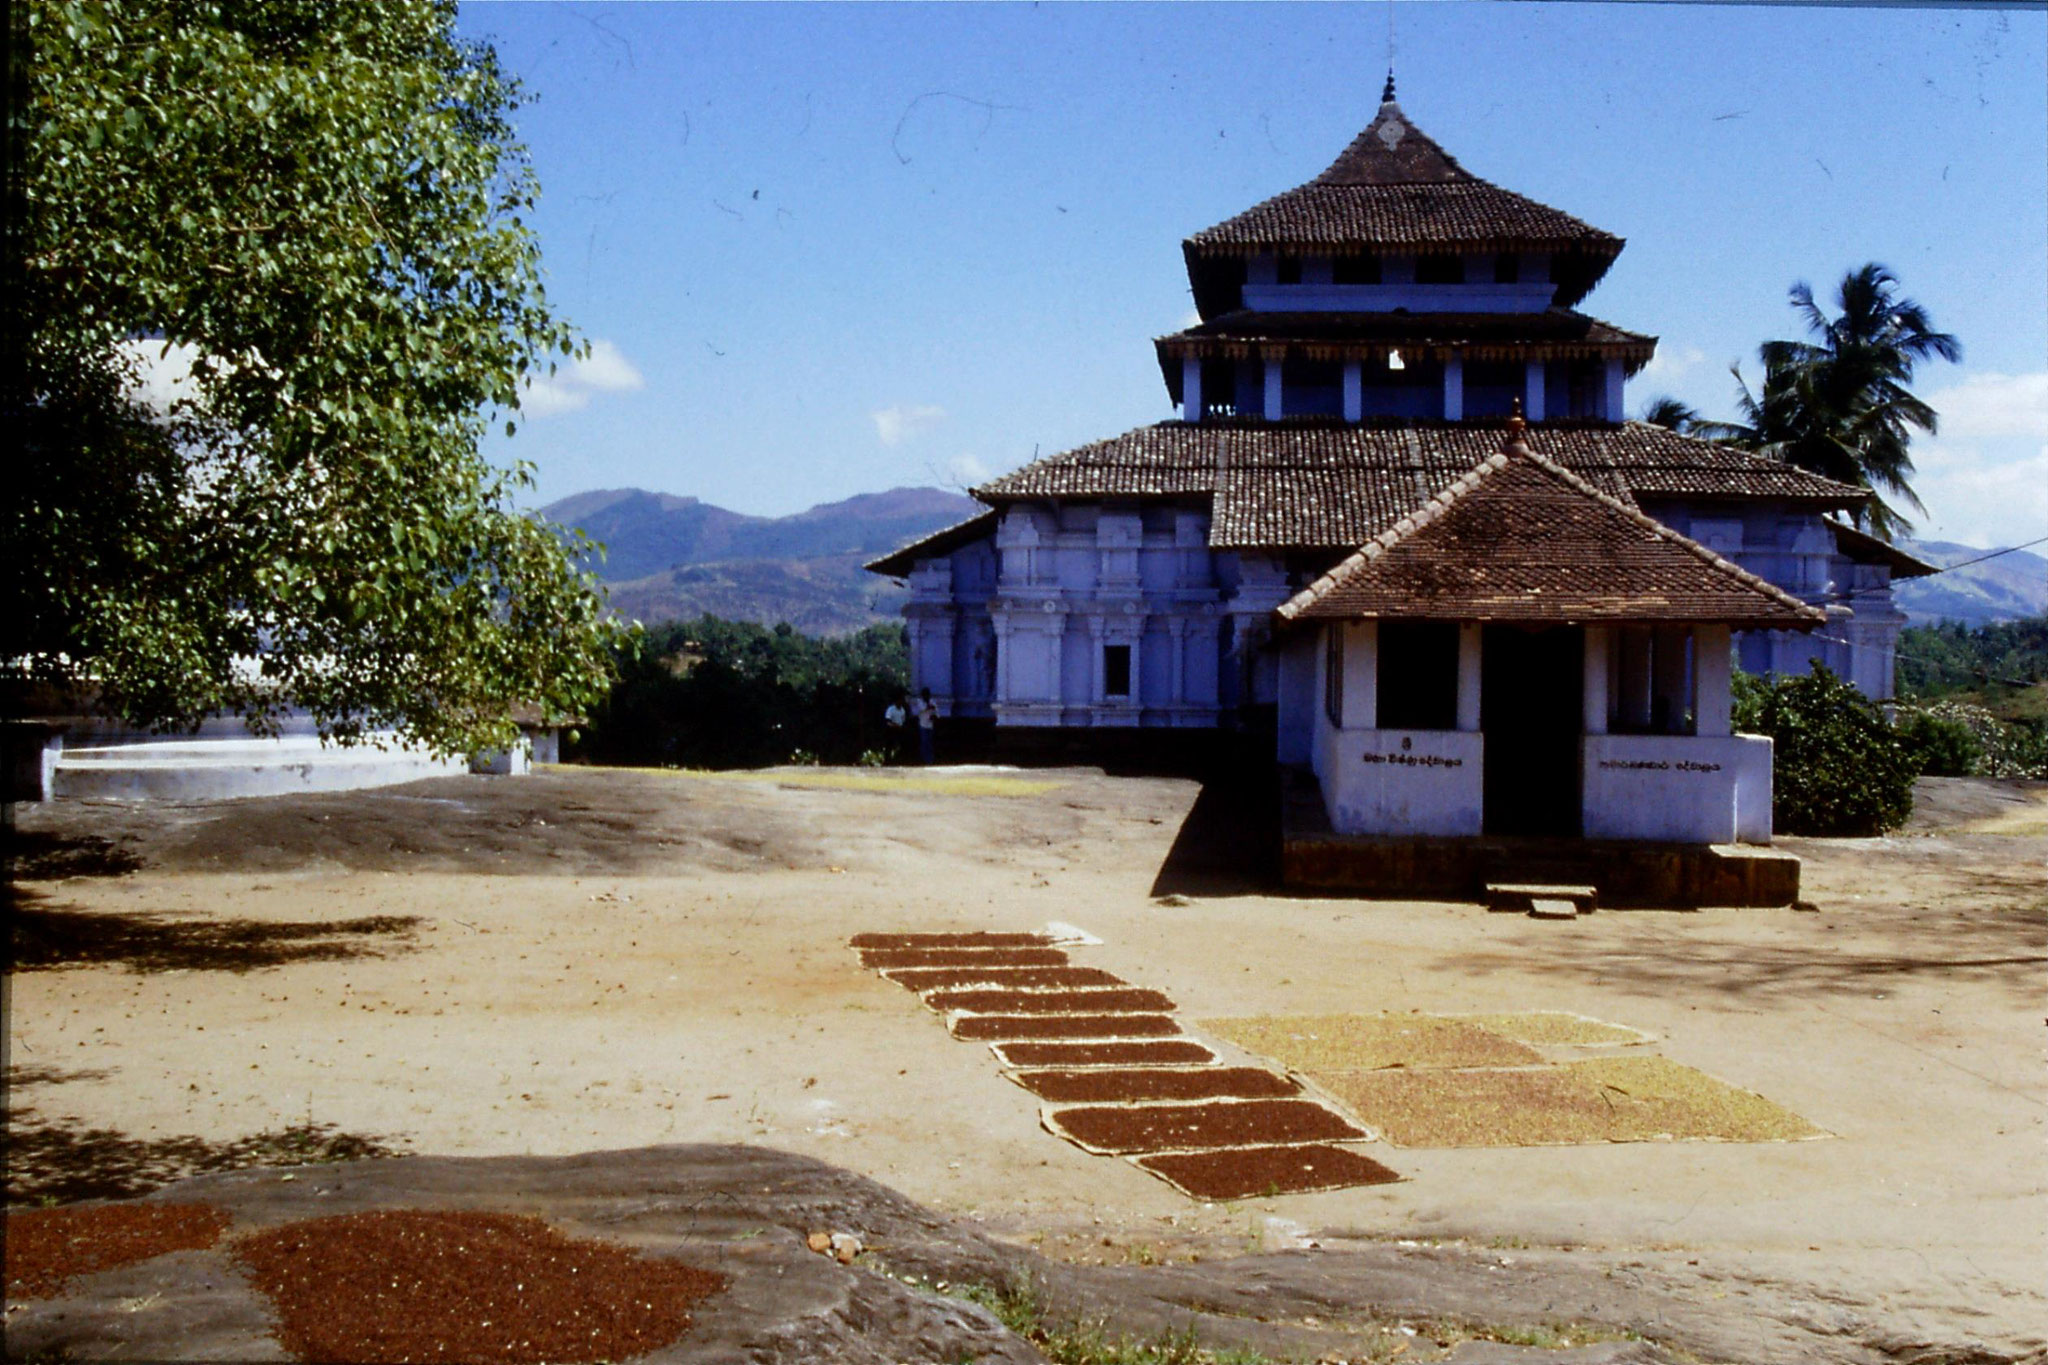 5/2/1990: 20: Outside Kandy Lankatilaka Temple, cloves drying